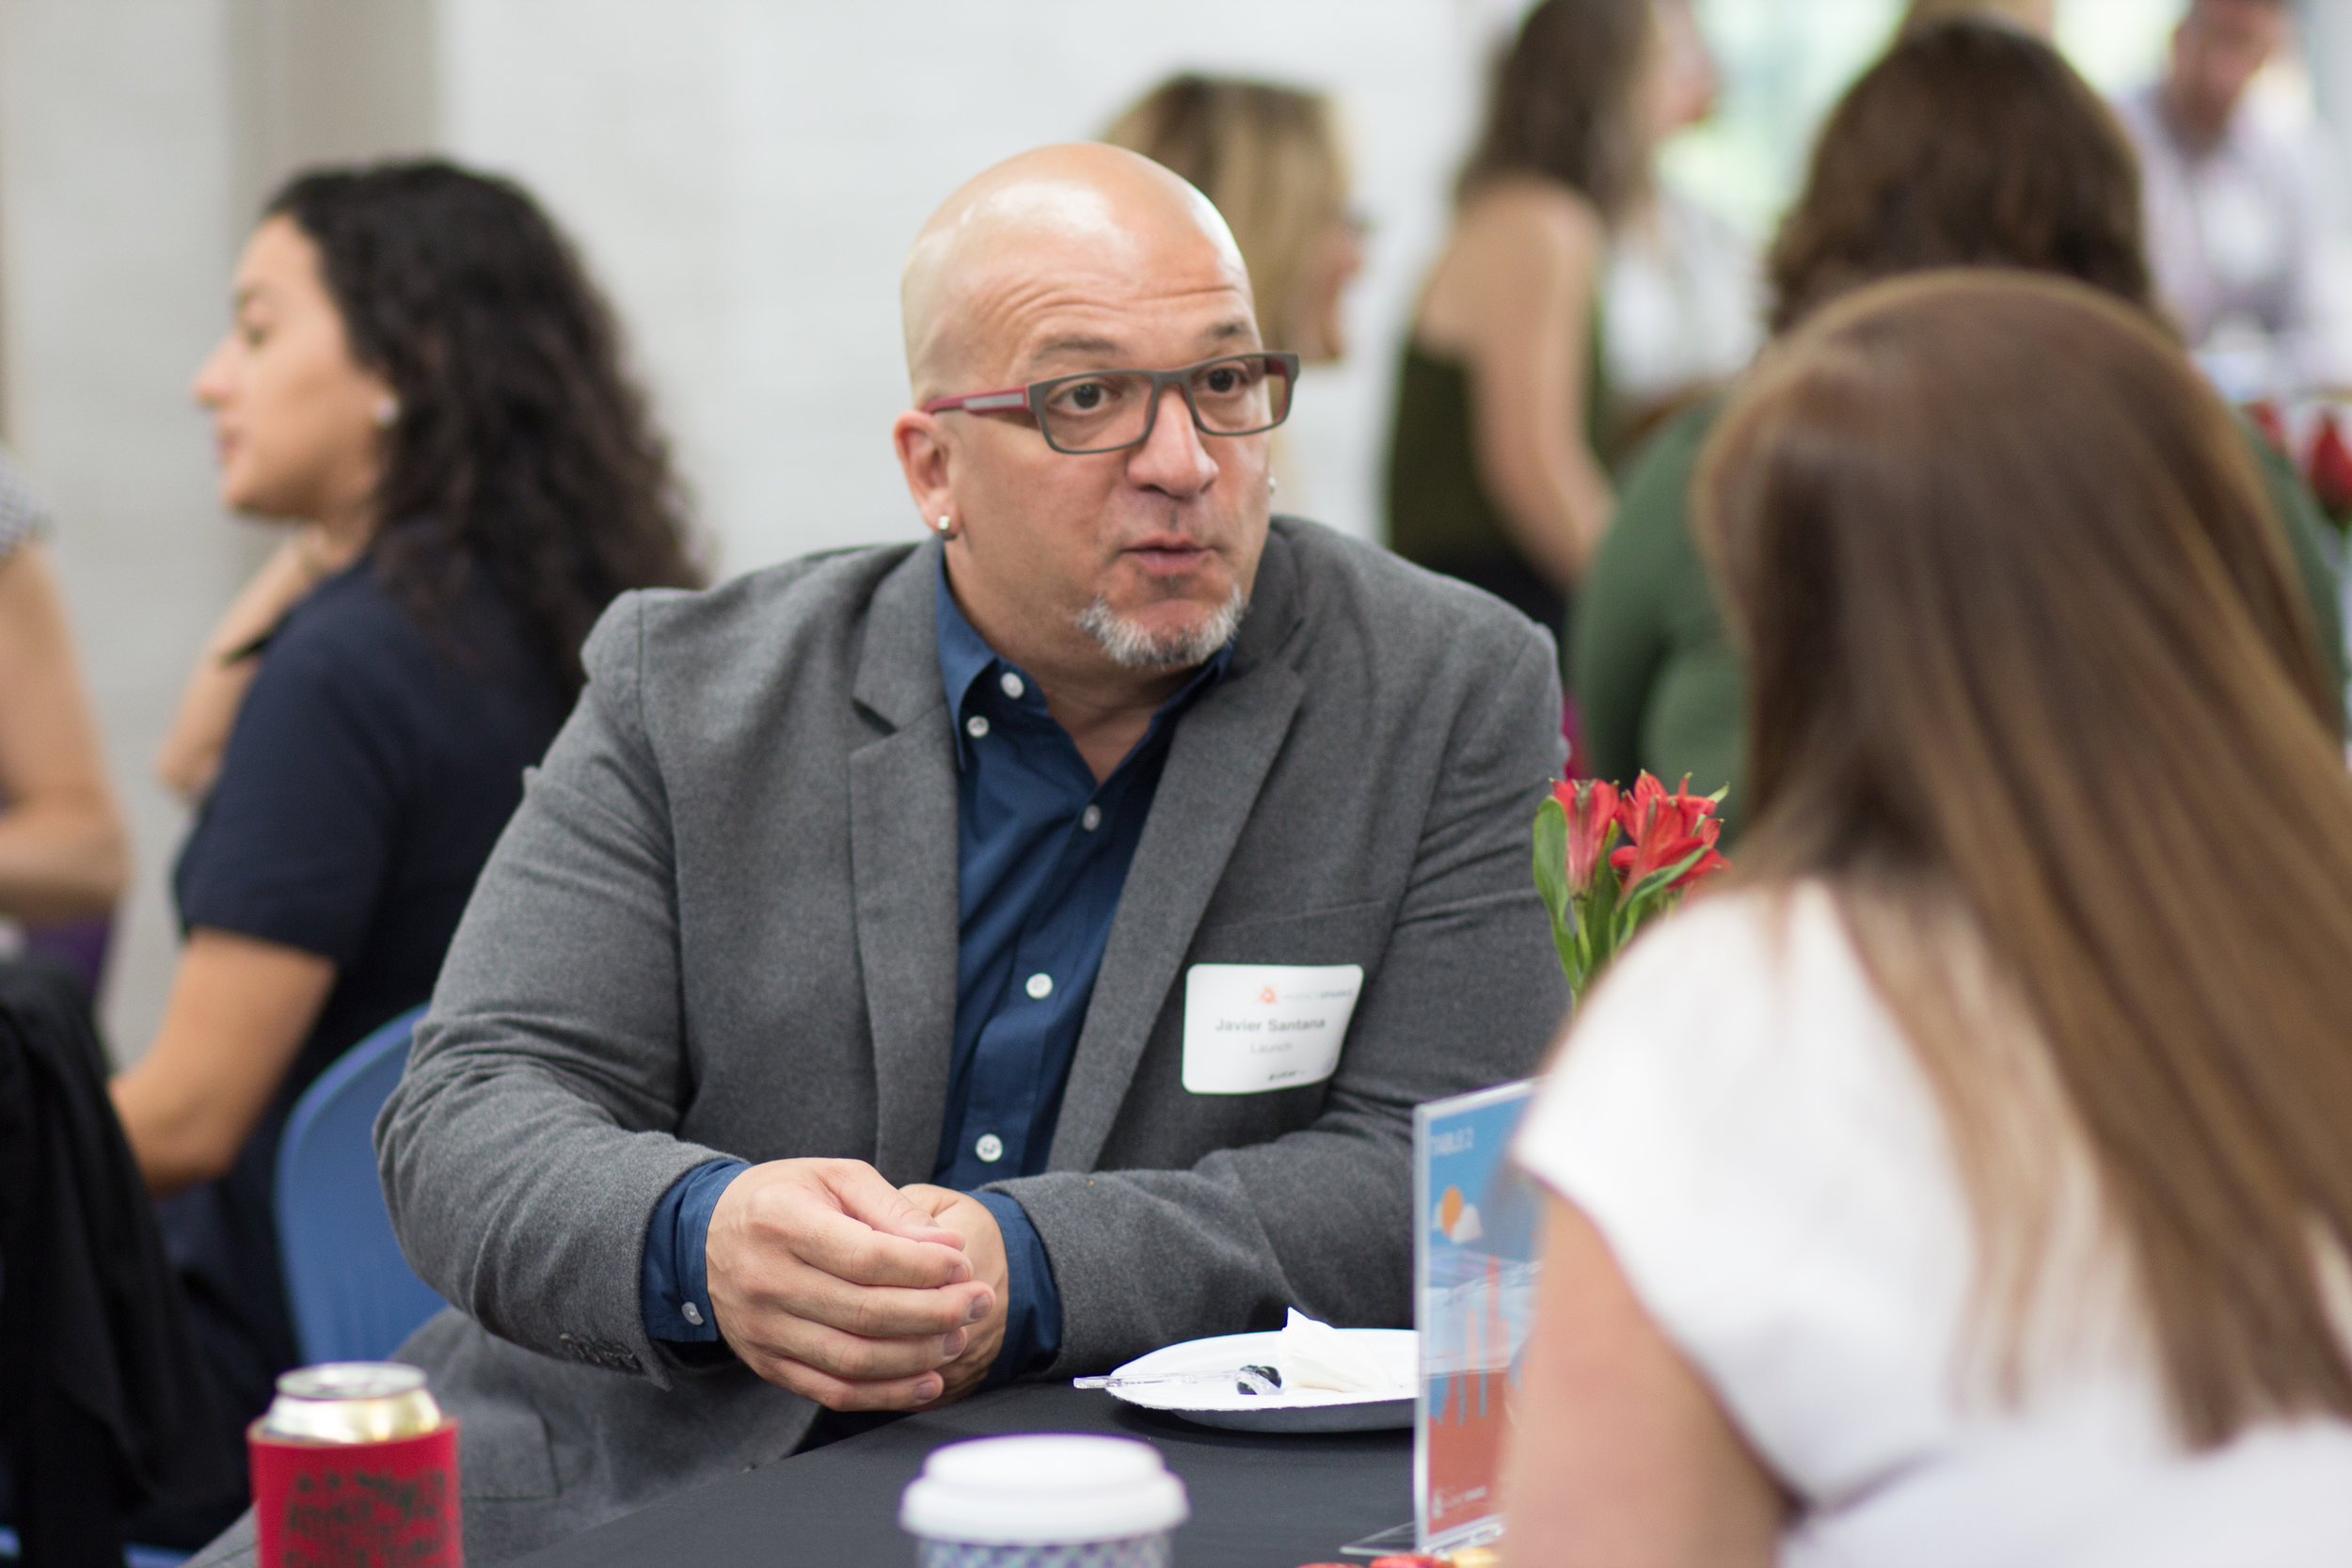 AgencySparks_#MarketersBreakfast_5.2019-0395.jpg